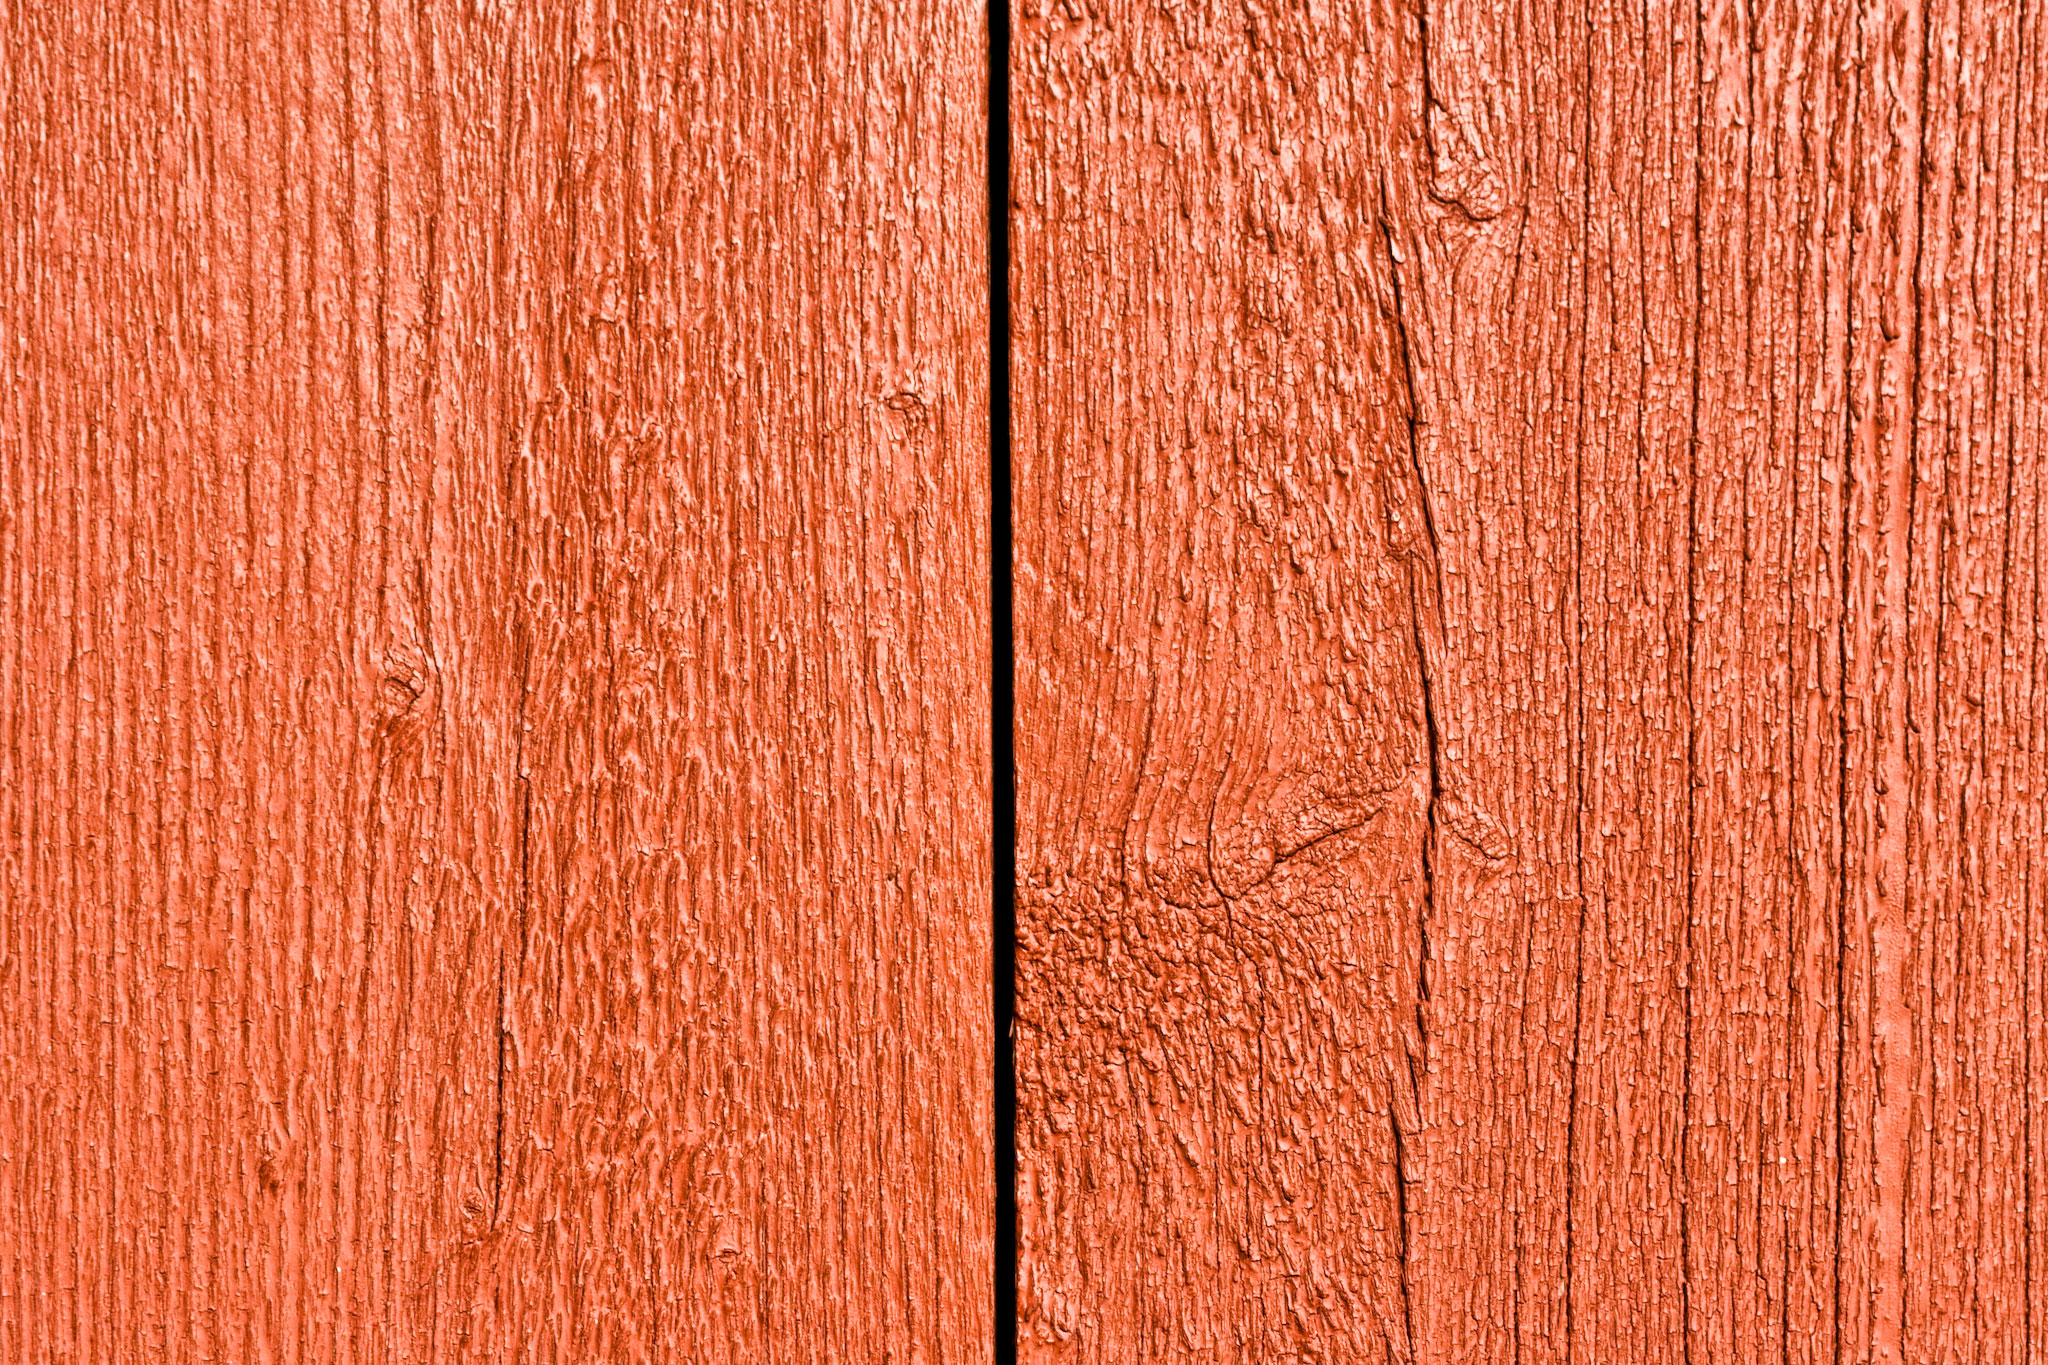 Paint Wood Texture Crowdbuild For